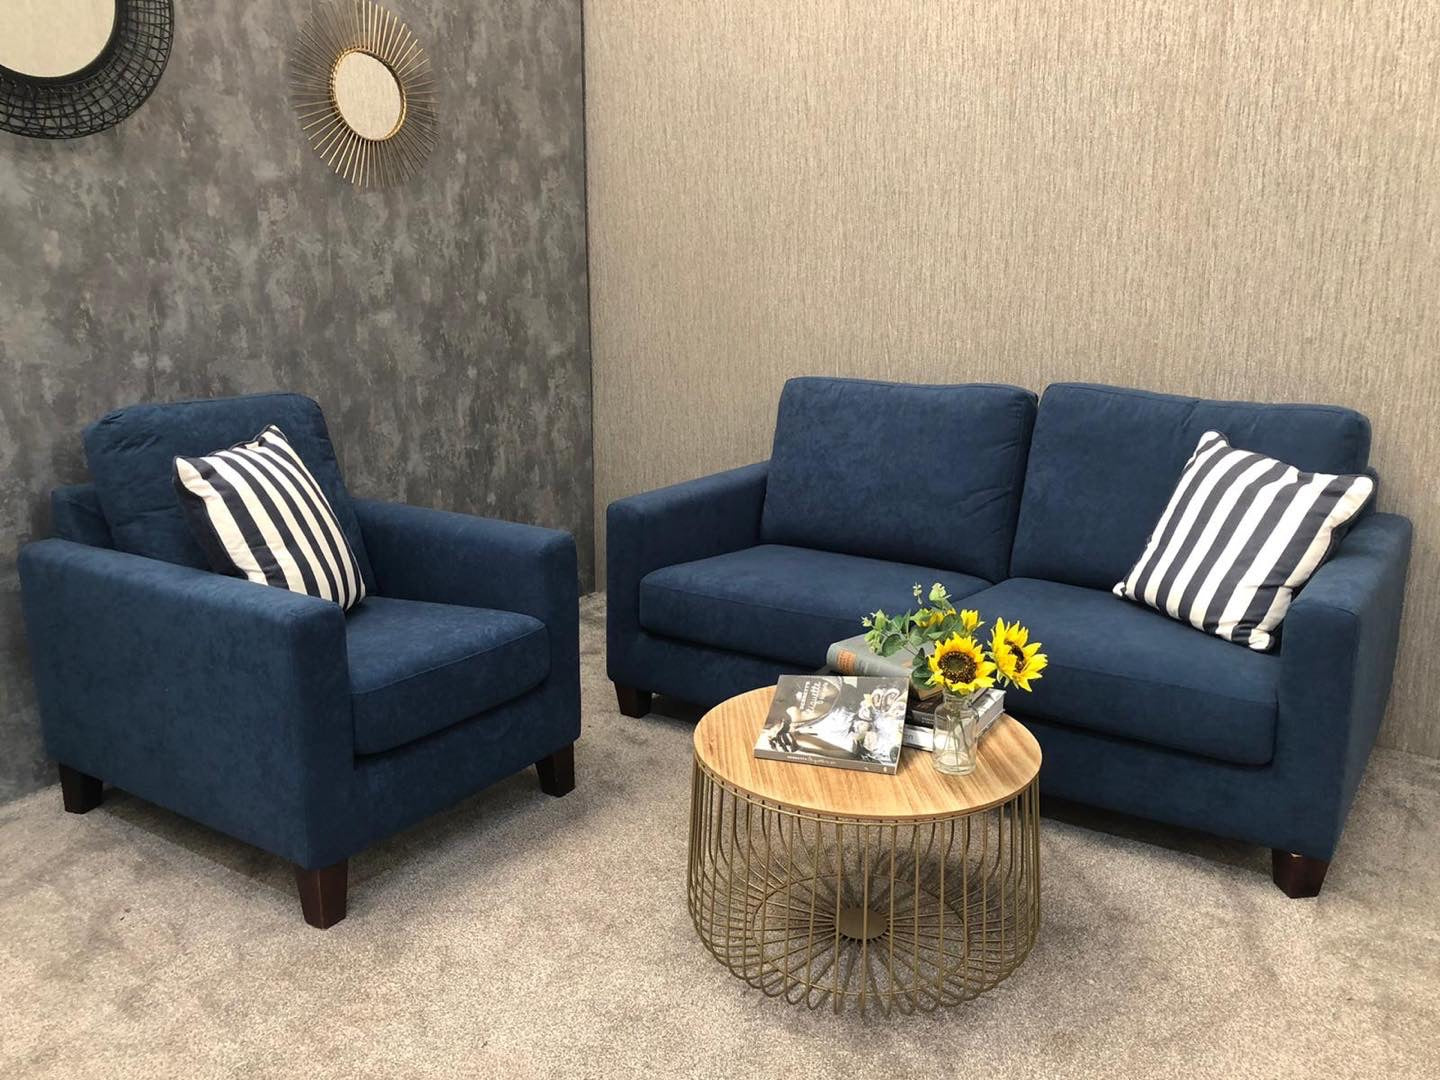 Ex Display Bailey 3 Seater & Armchair Set